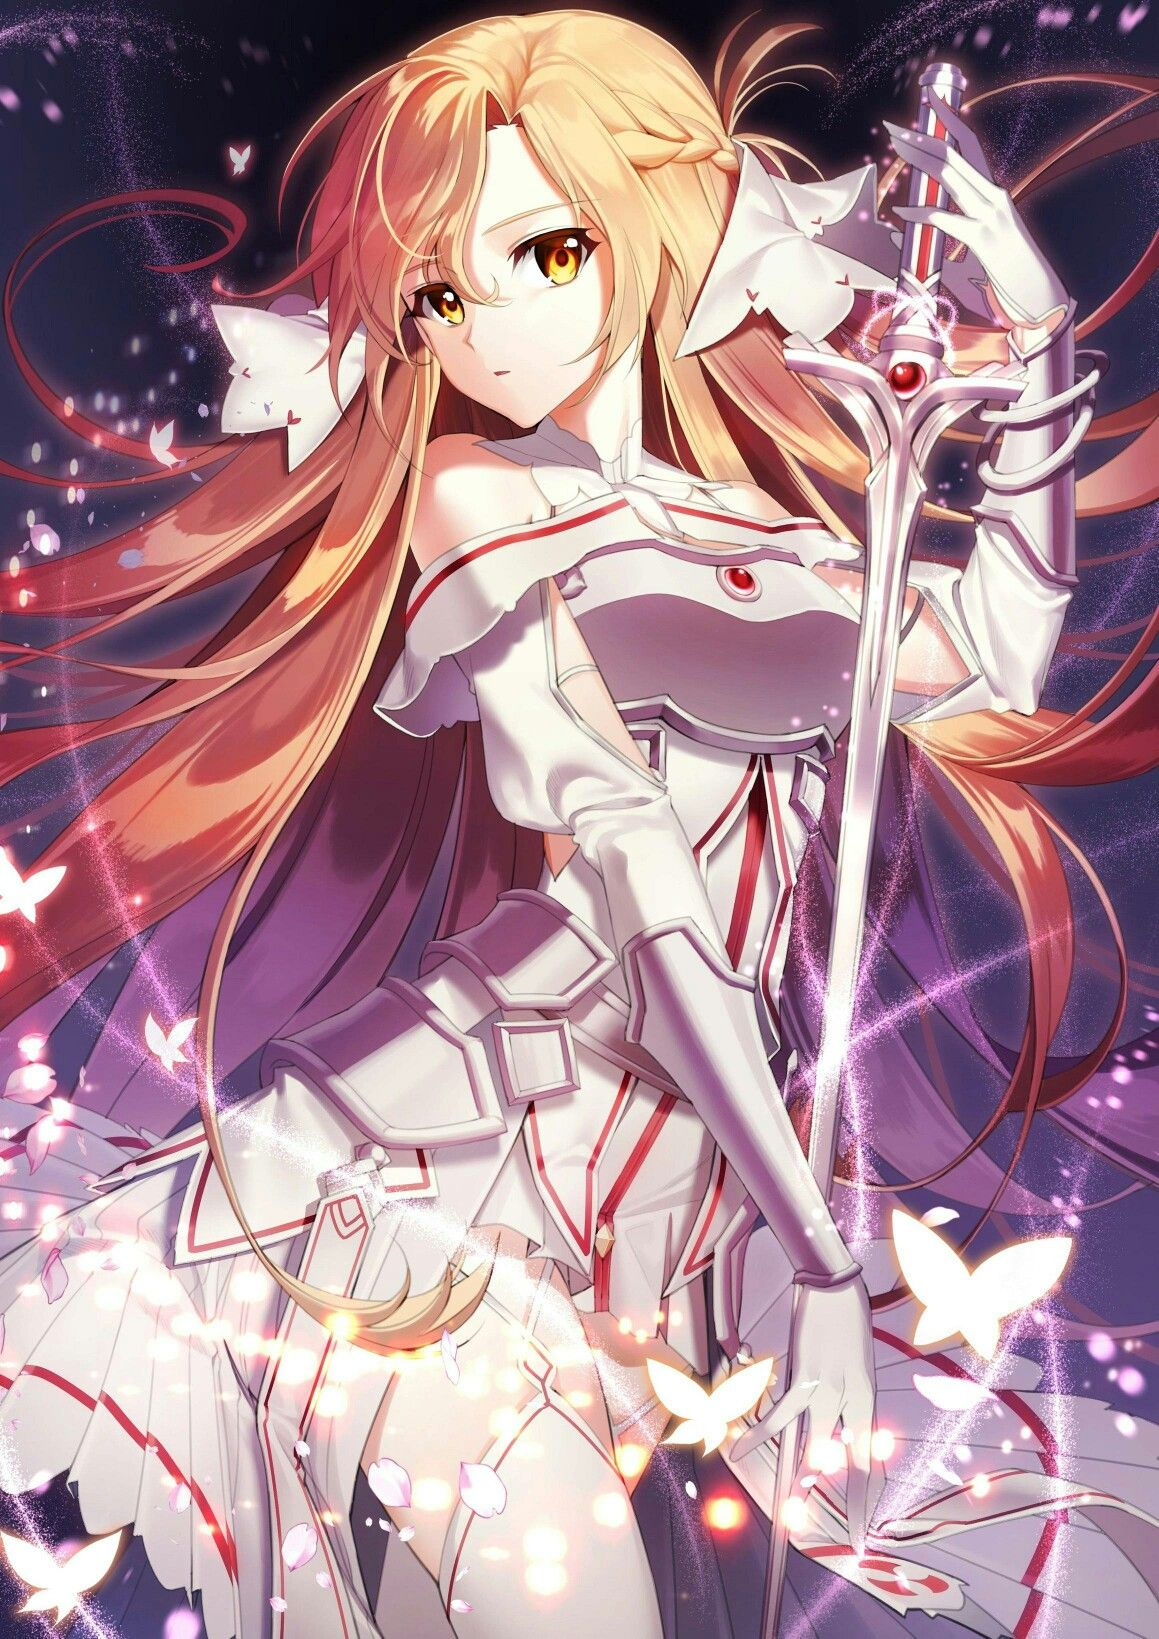 Pin by Devesh on Sword art online (With images) Sword